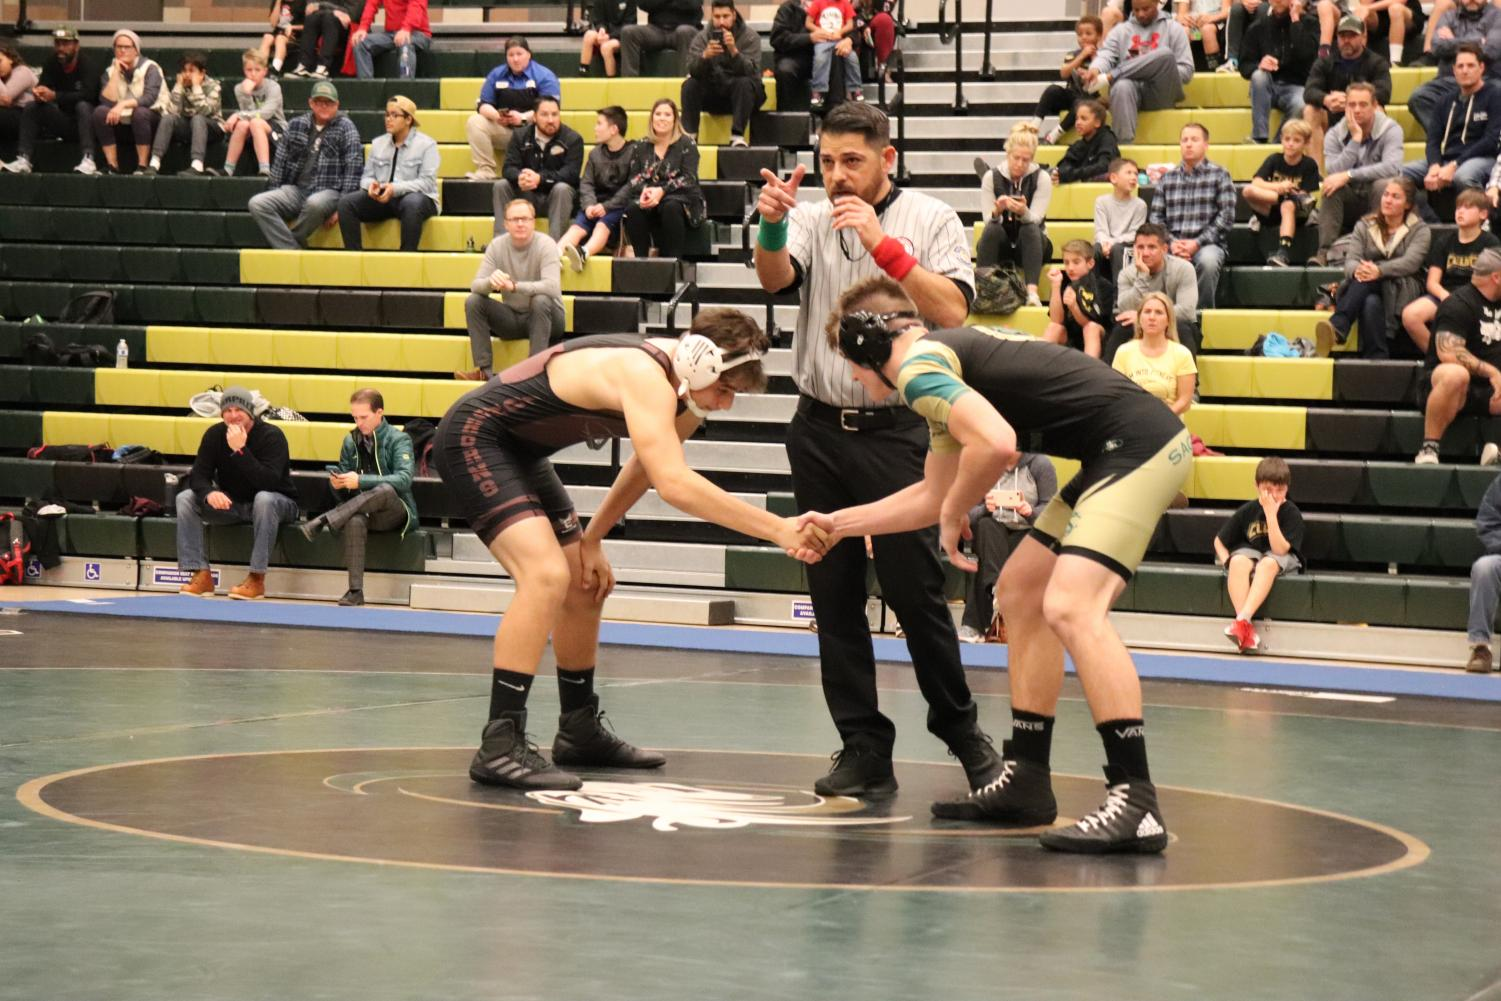 Freshman+Luke+McLellan+shakes+hands+with+his+opponent+before+the+referee+blows+the+whistle.+McLellan+wrestled+in+the+170+weight+class+and+won+this+match+with+a+pin.